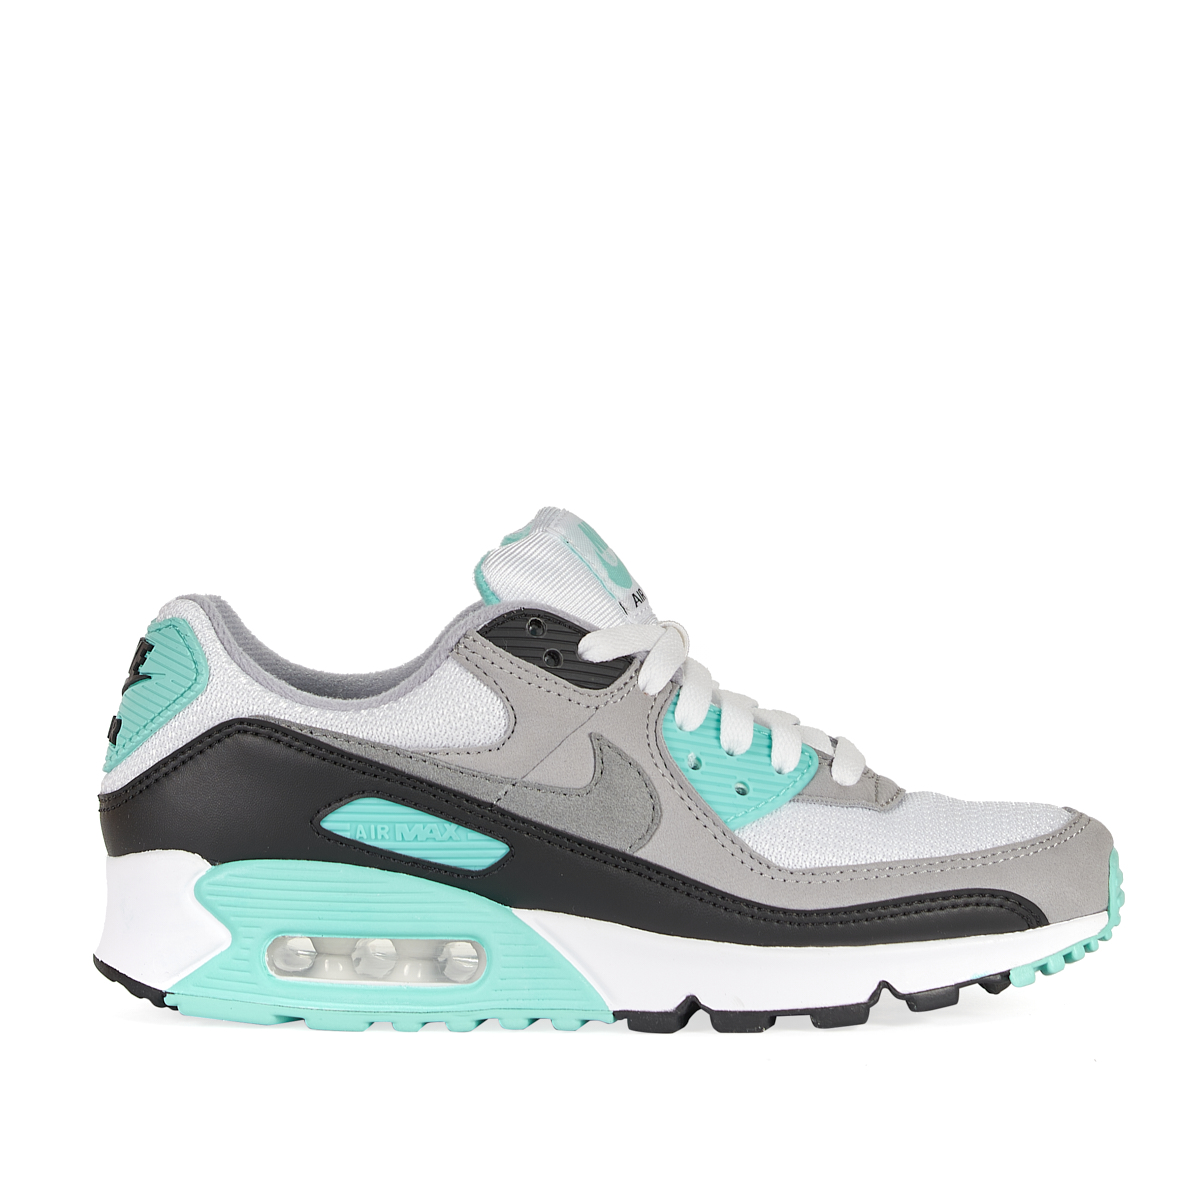 Air Max 90, WHITE/PARTICLE GREY-HYPER TURQ-BLACK